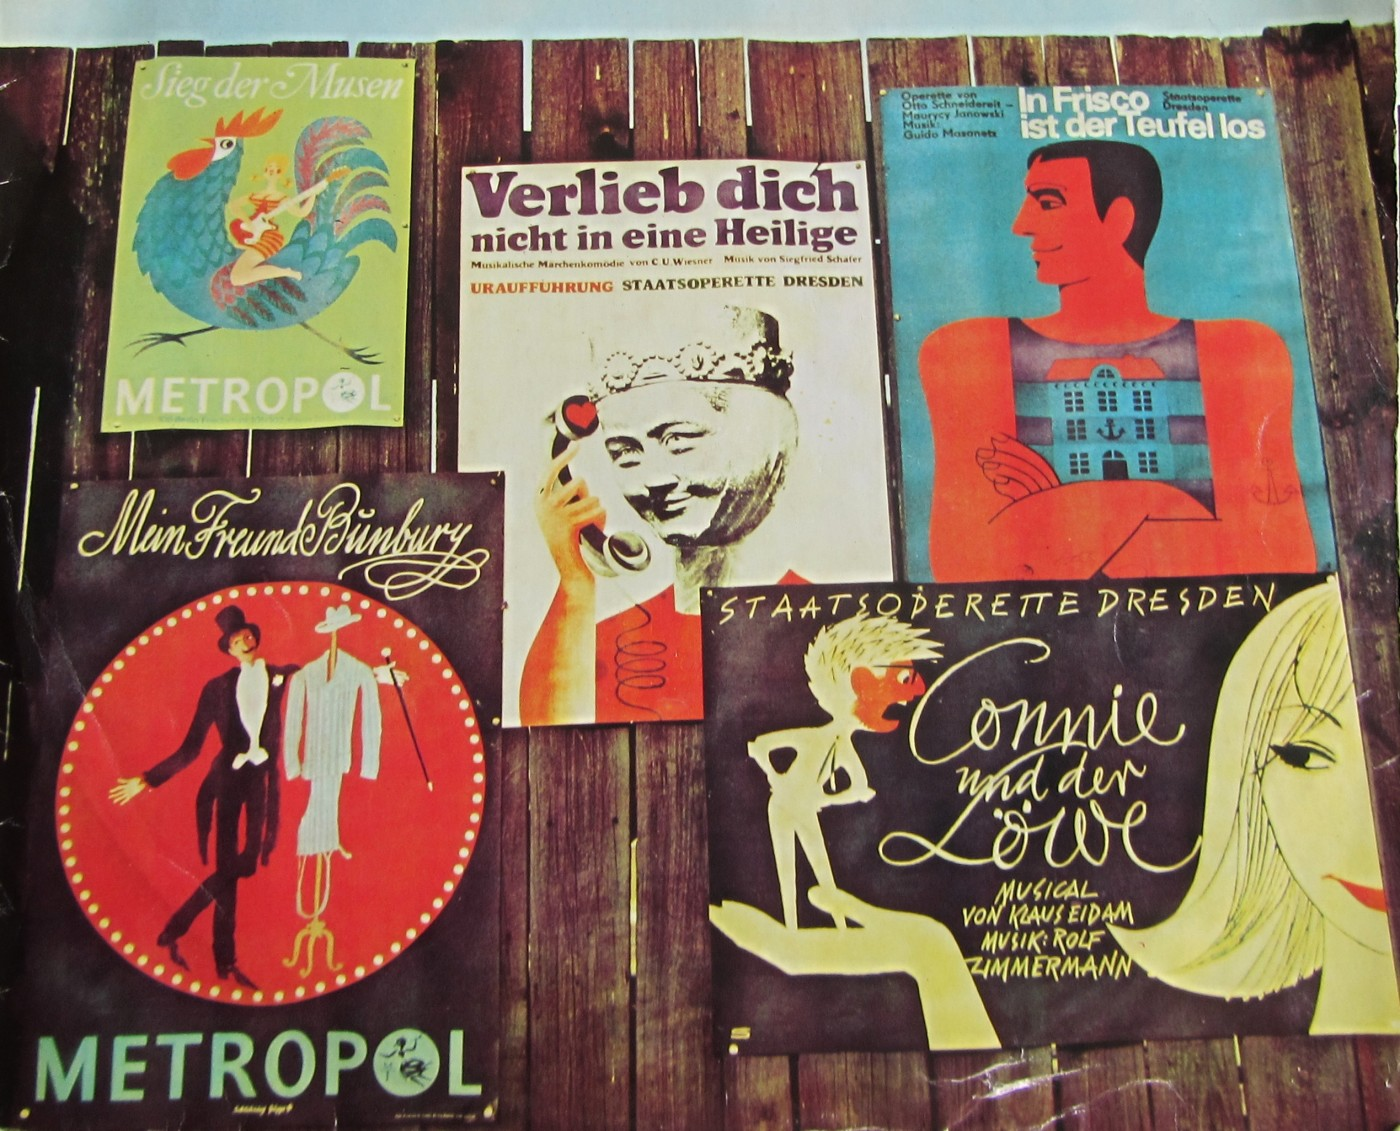 Various famous operettas from Eastern Germany, as presented on an LP cover in the GDR.